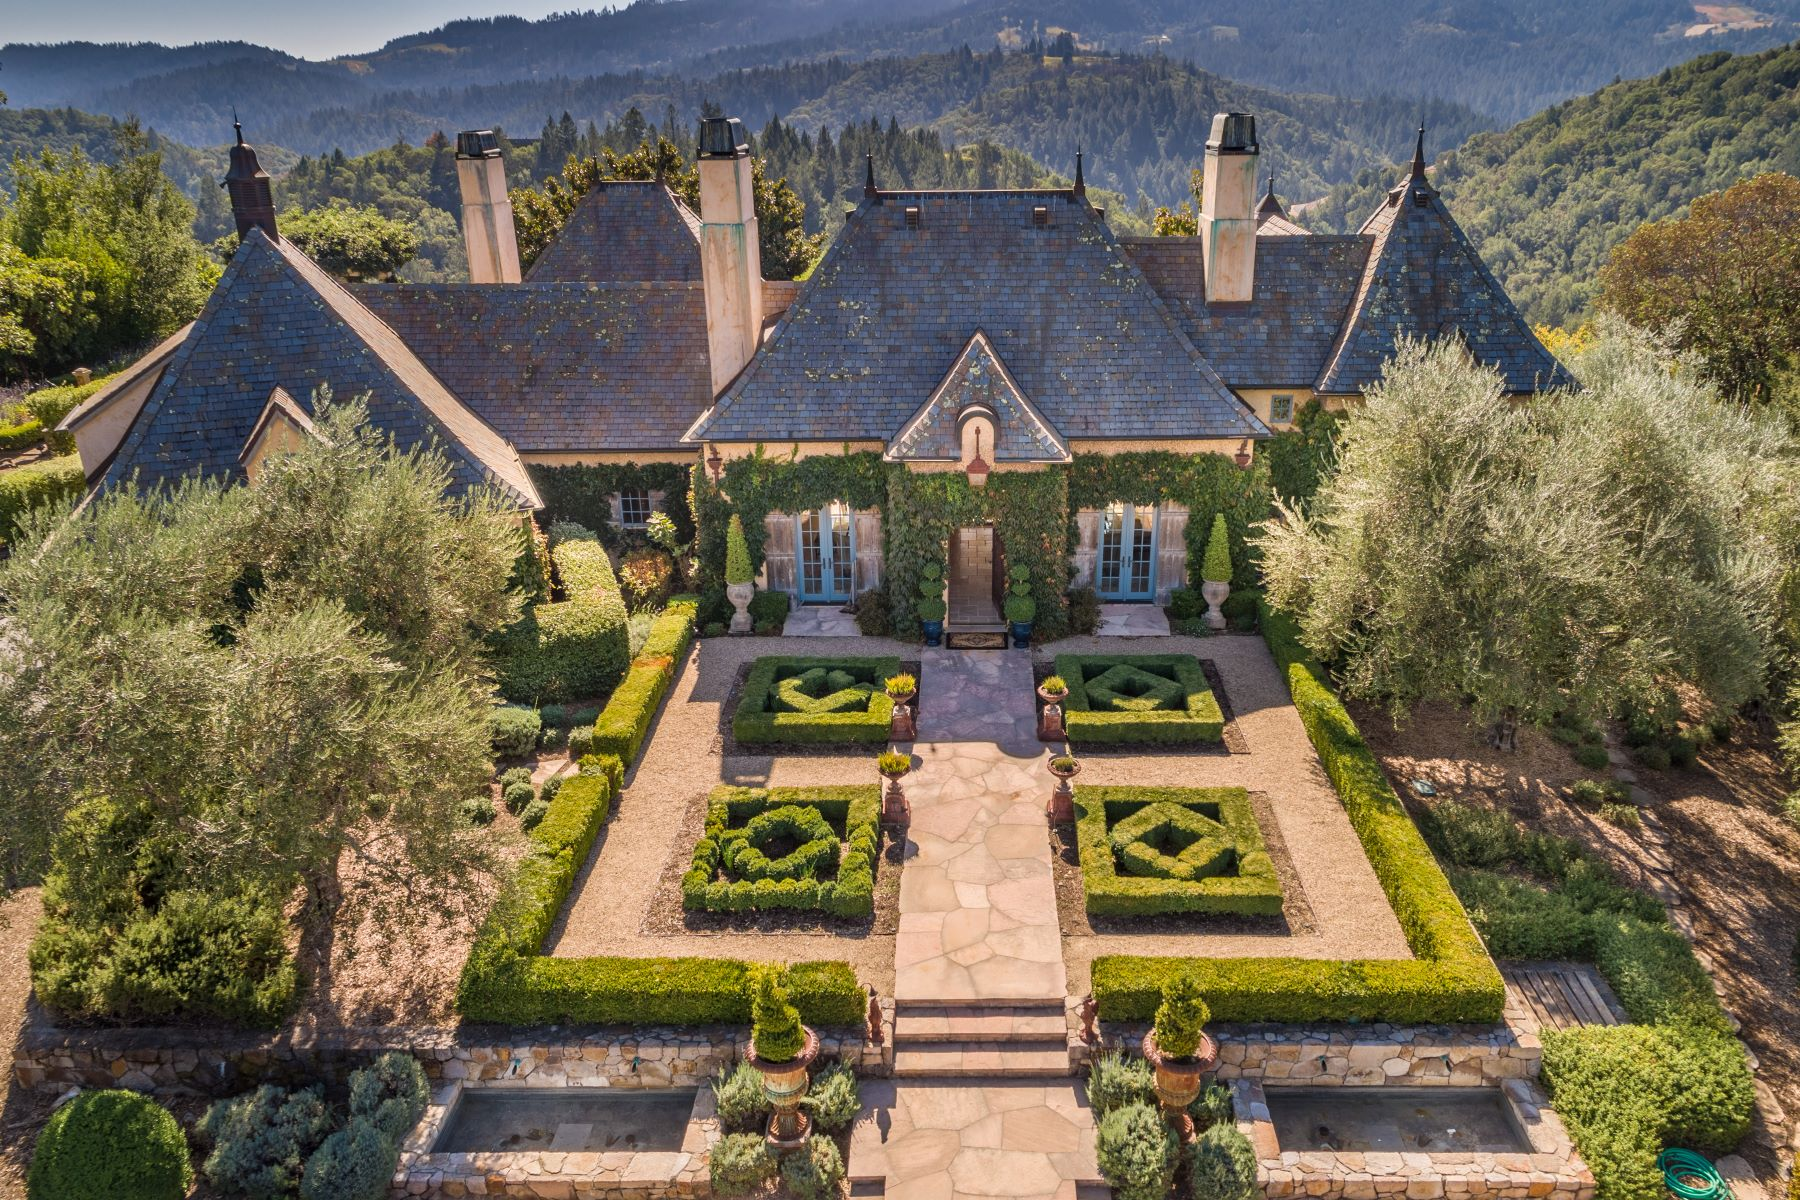 Single Family Homes for Active at Oakville Napa Valley Estate 100 Campbell Creek Rd Napa, California 90404 United States